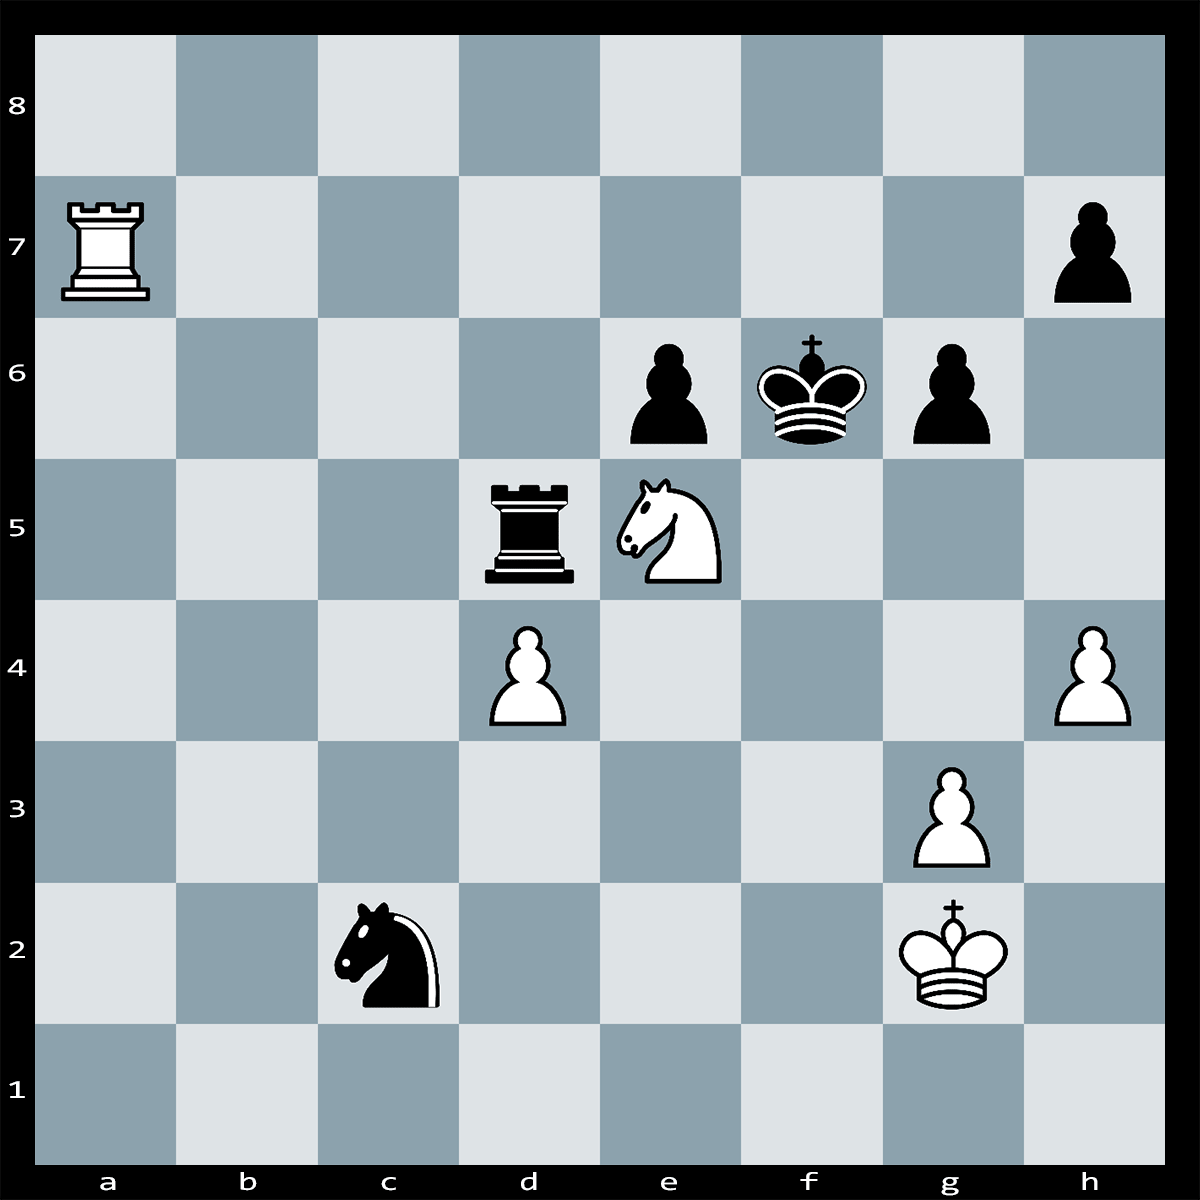 Mate in 1 Move, White to Play | Chess Puzzle #238